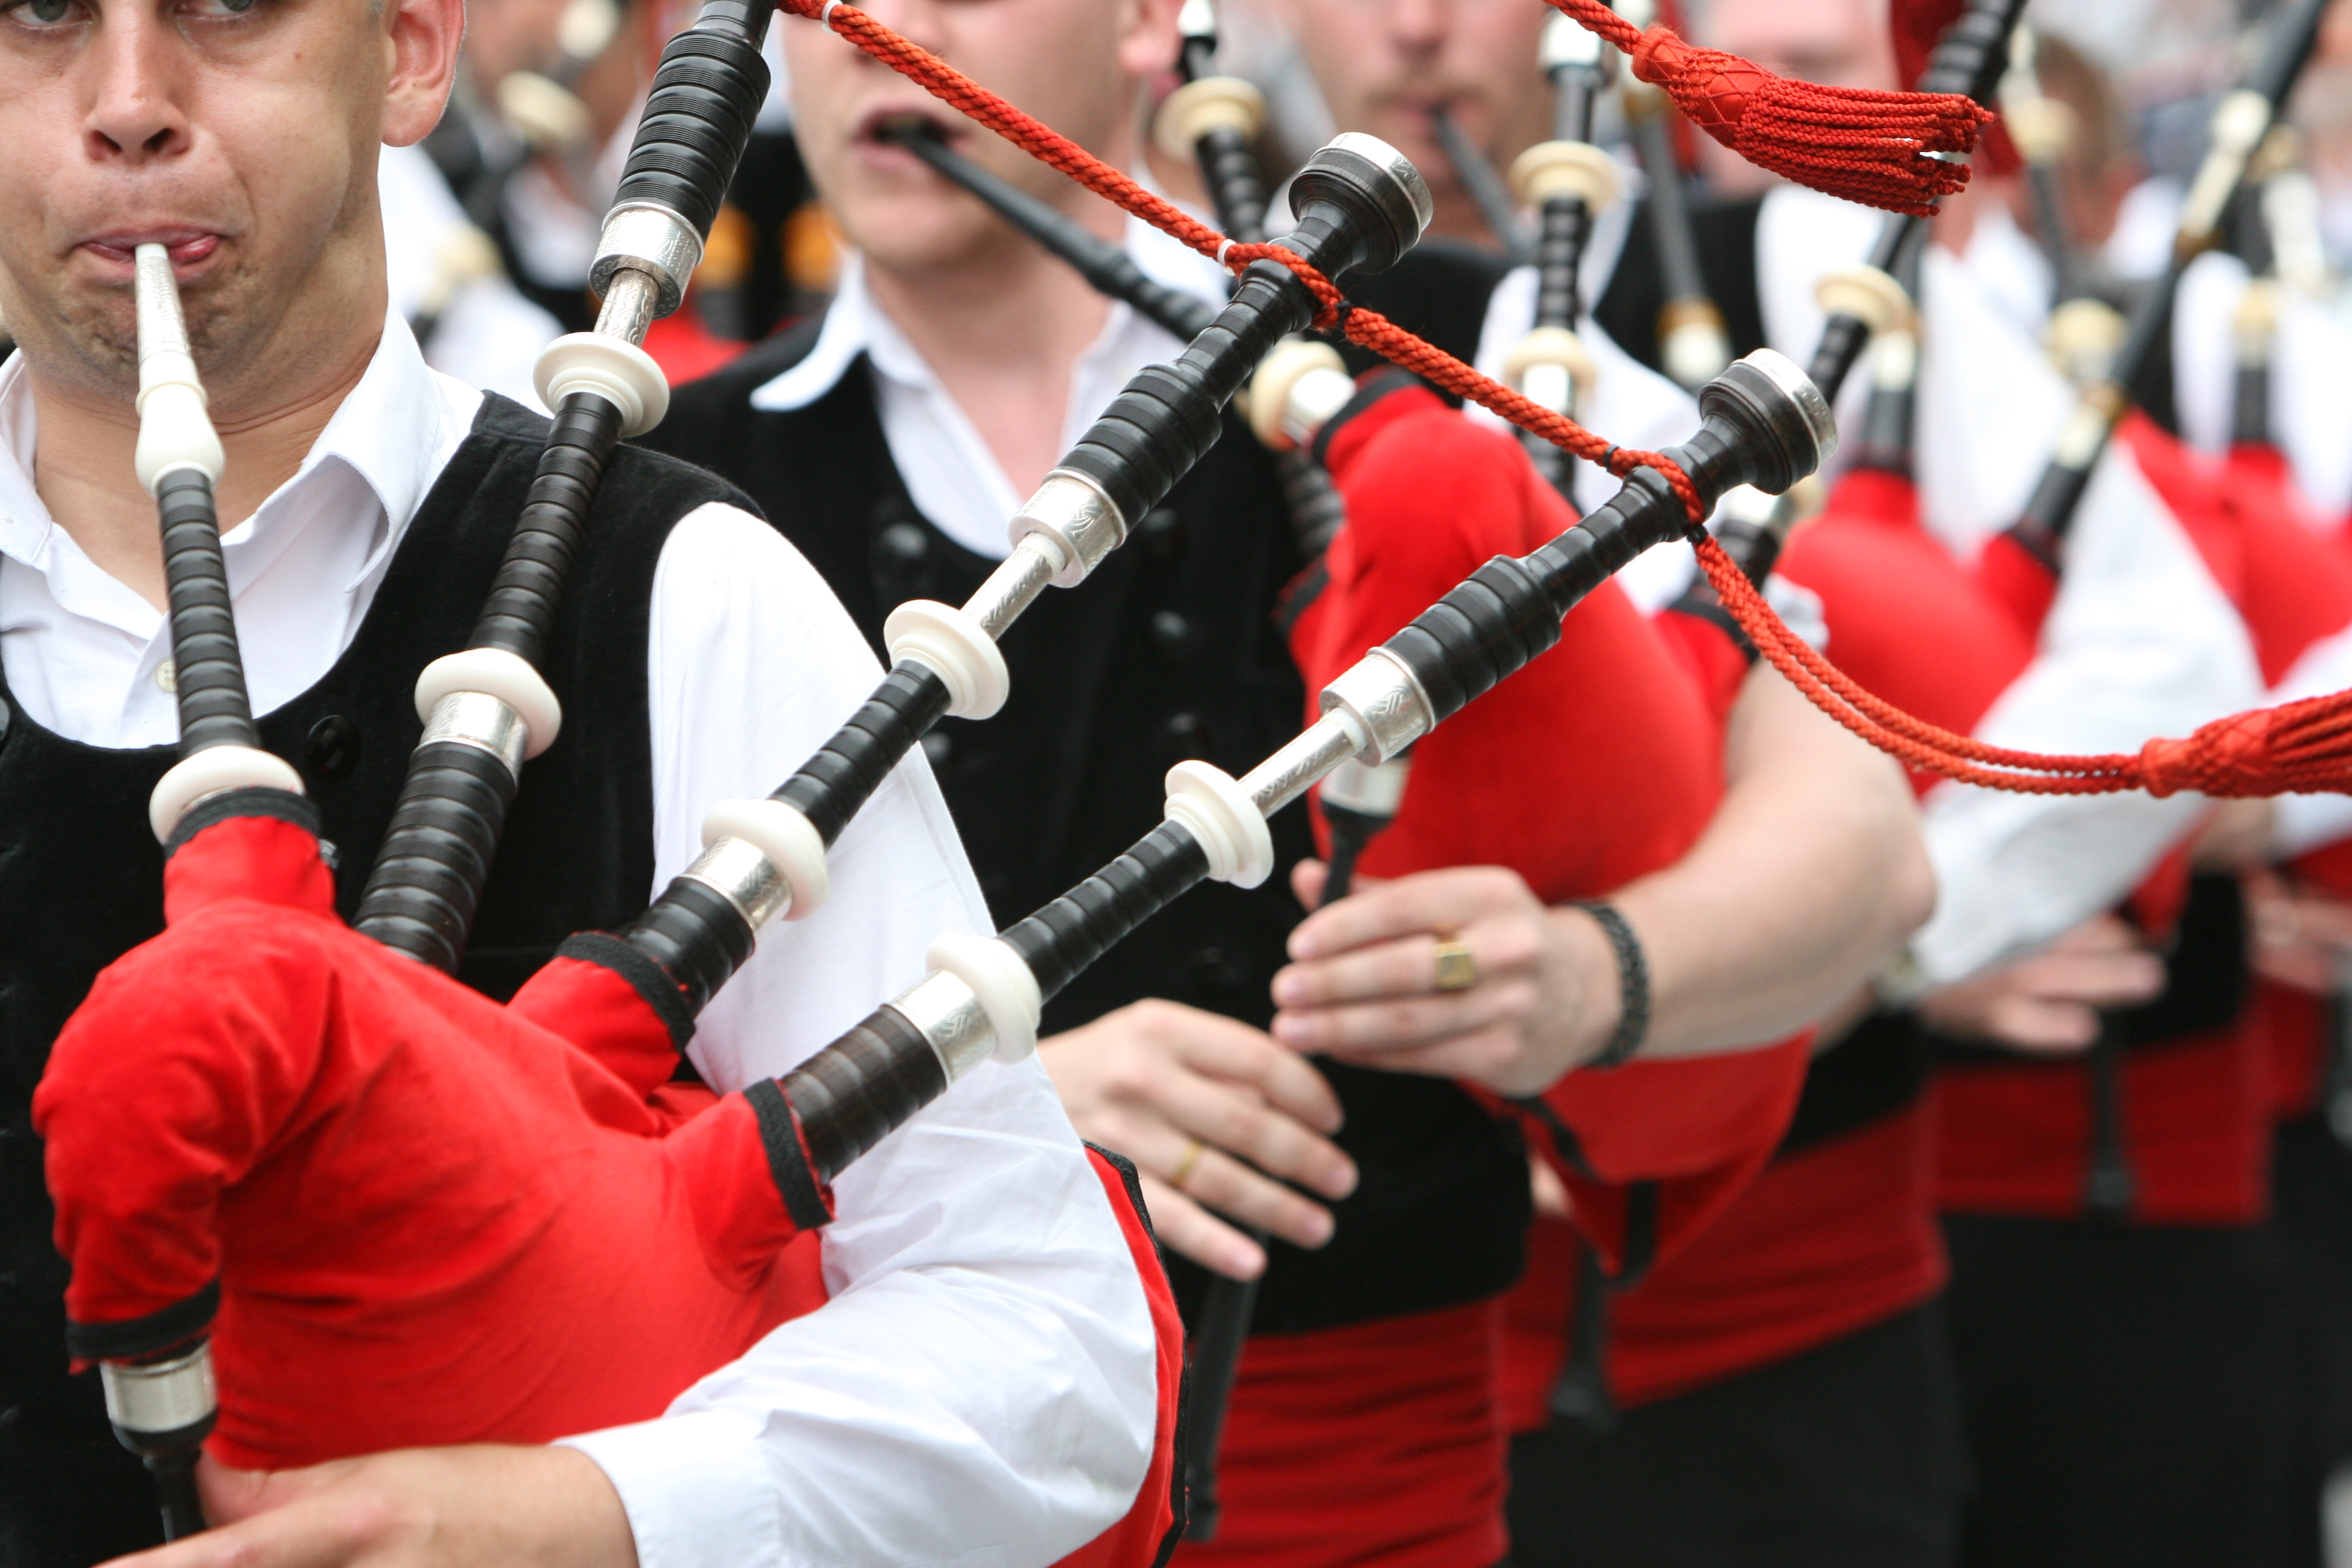 UNESCO has added the traditional Breton Fest-Noz dances to its List of the Intangible Cultural Heritage of Humanity